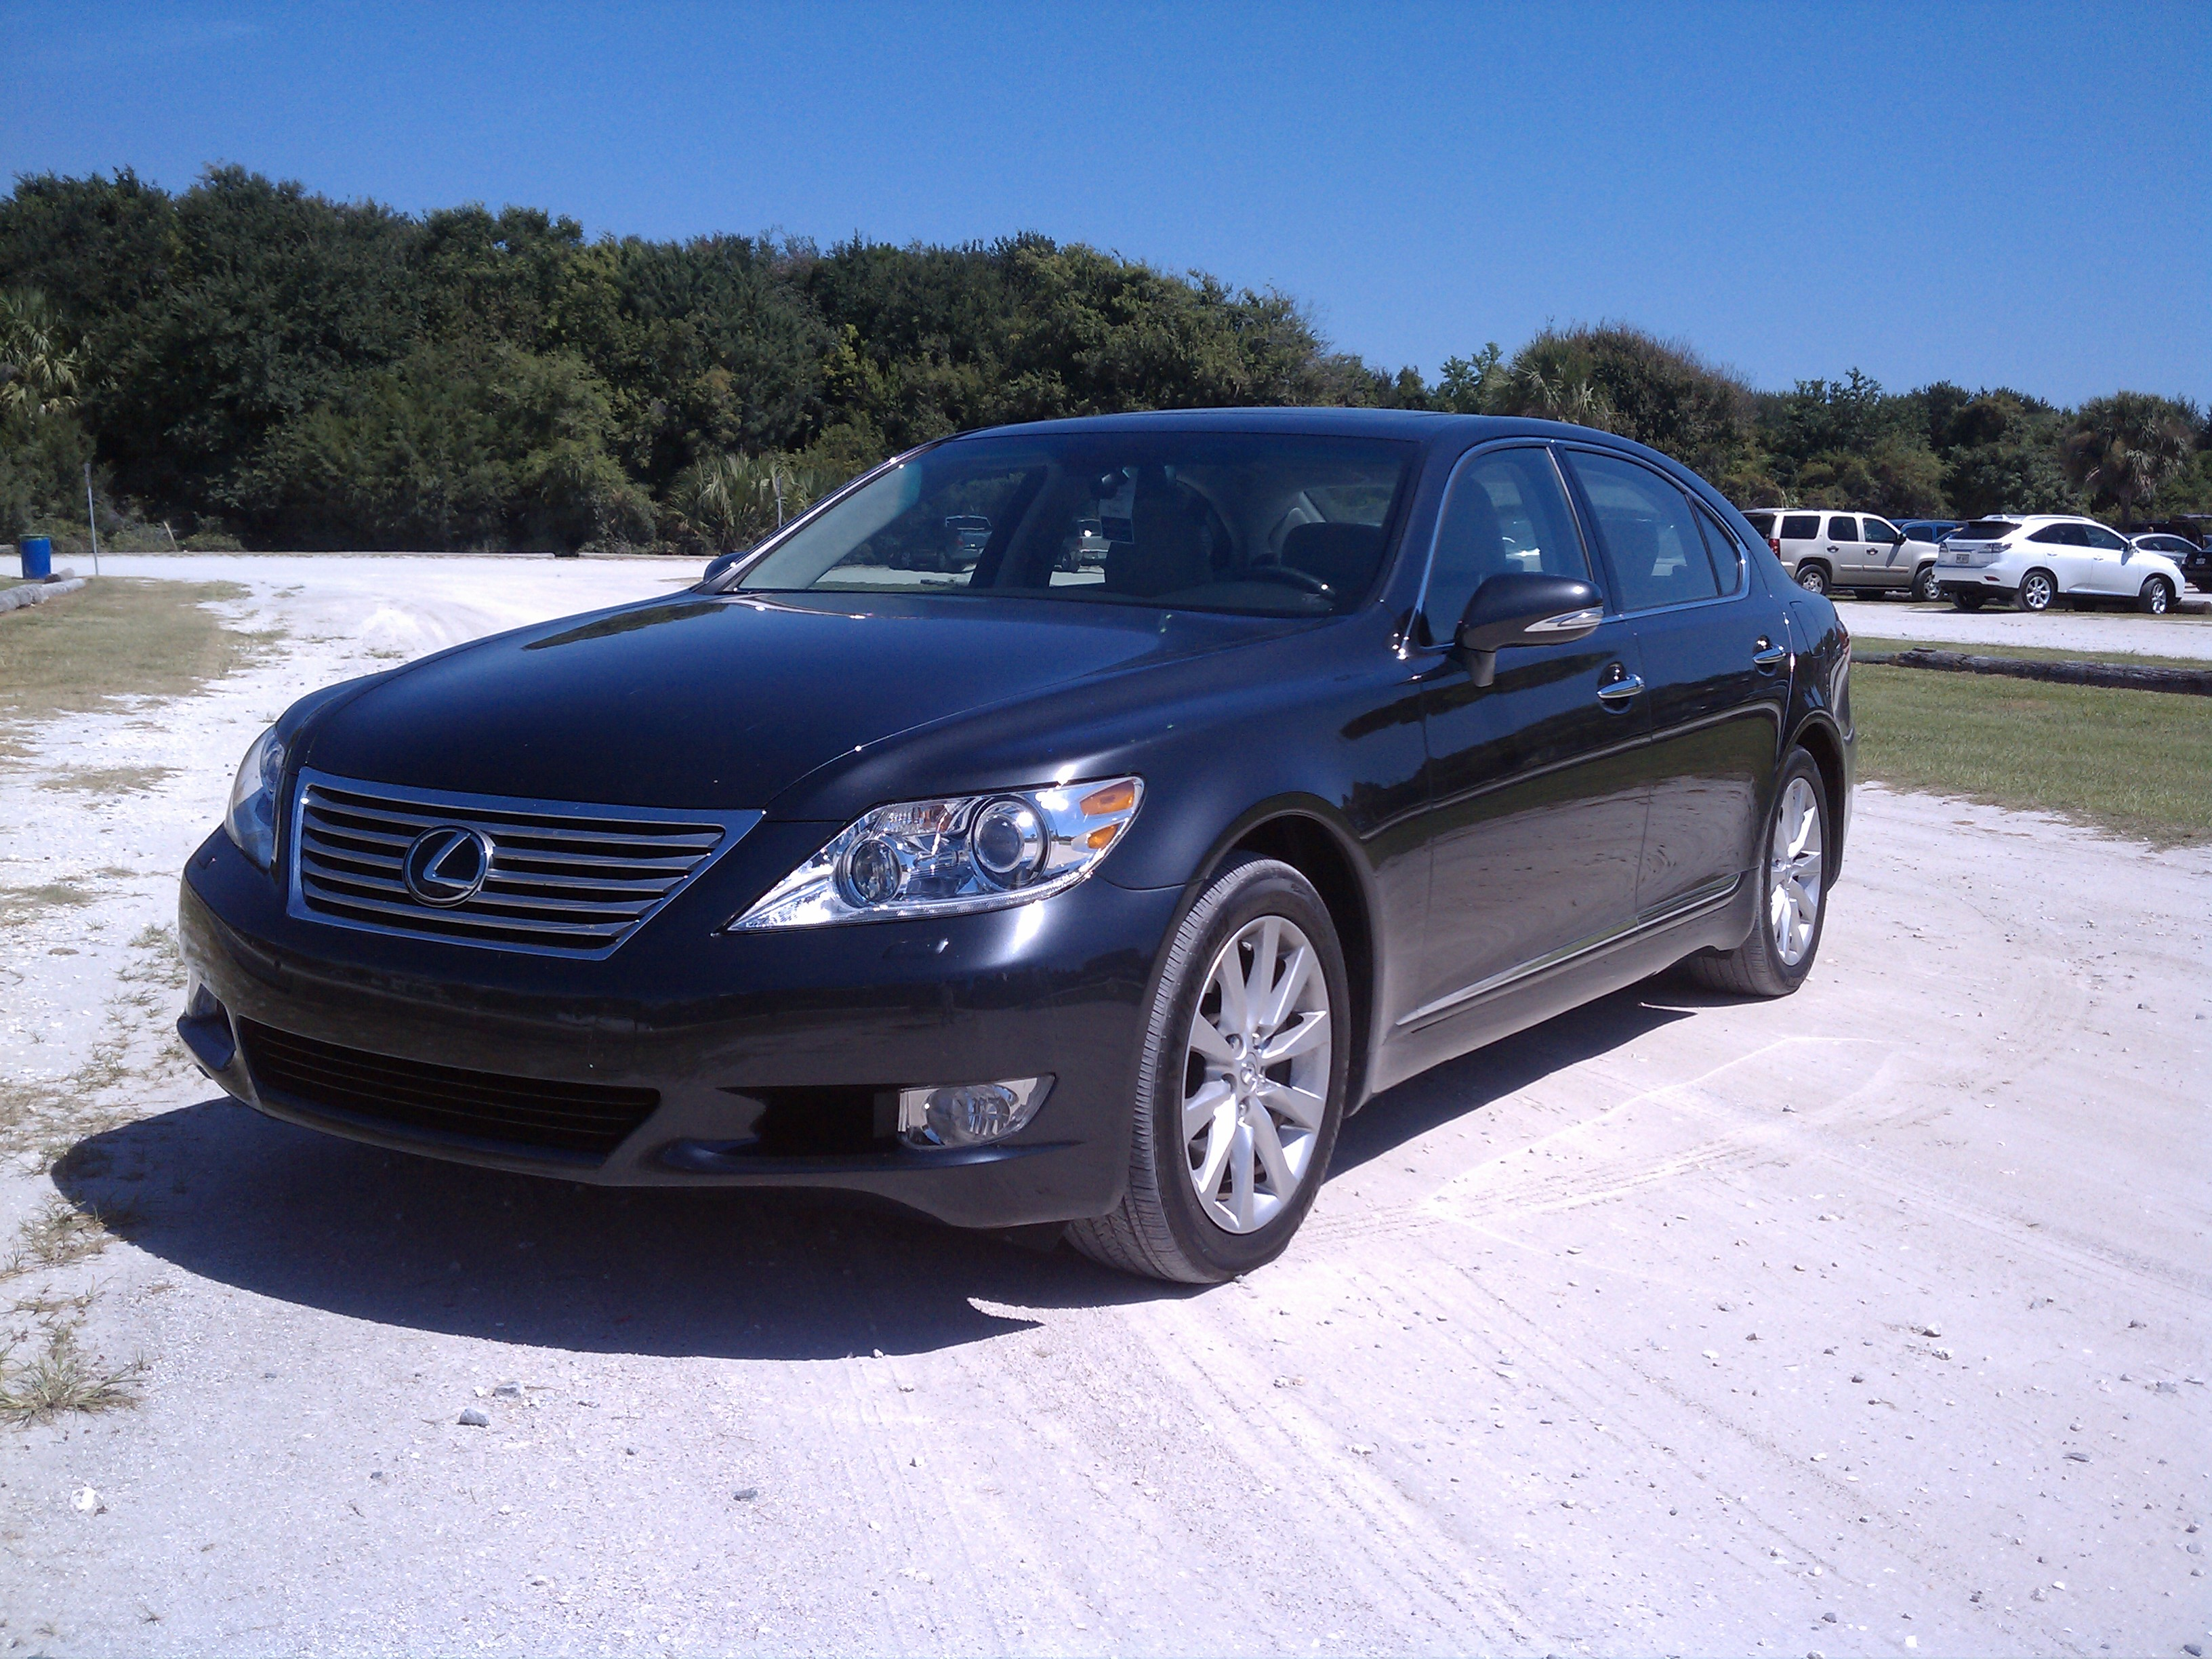 2010 Lexus LS460L Top Speed